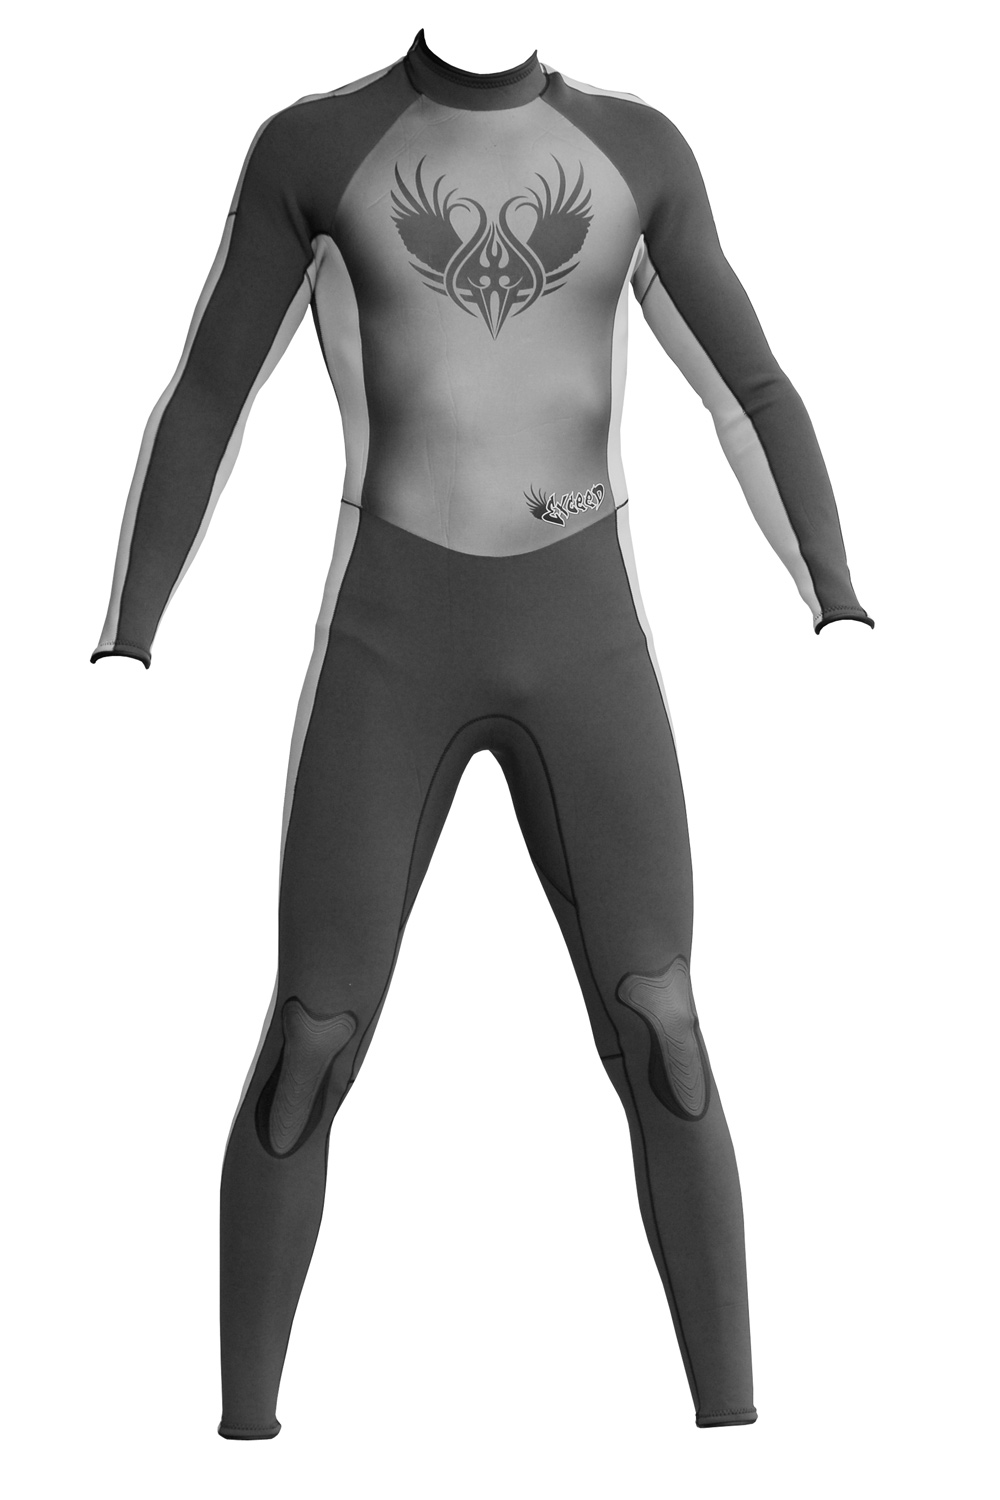 Exceed Esteem Mens Long Wetsuit